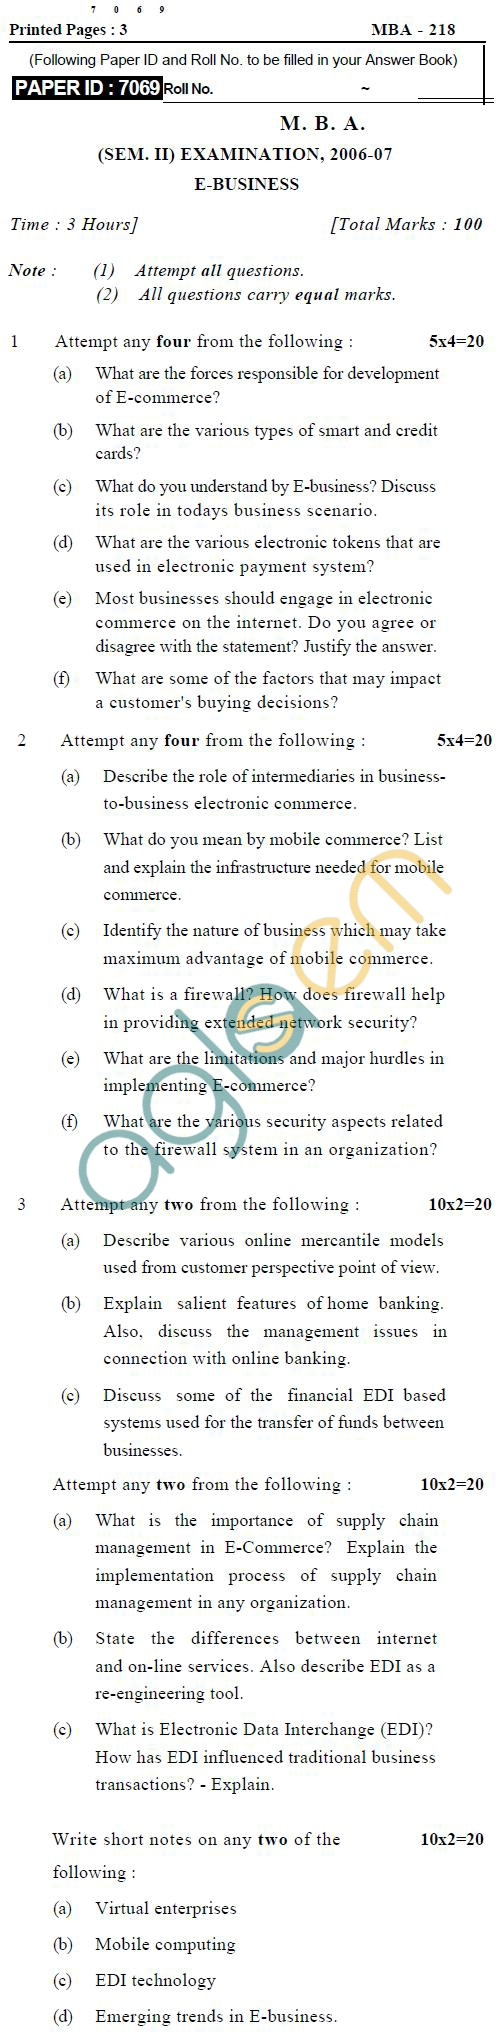 UPTU M.B.A. Question Papers - MBA-218-E-Business